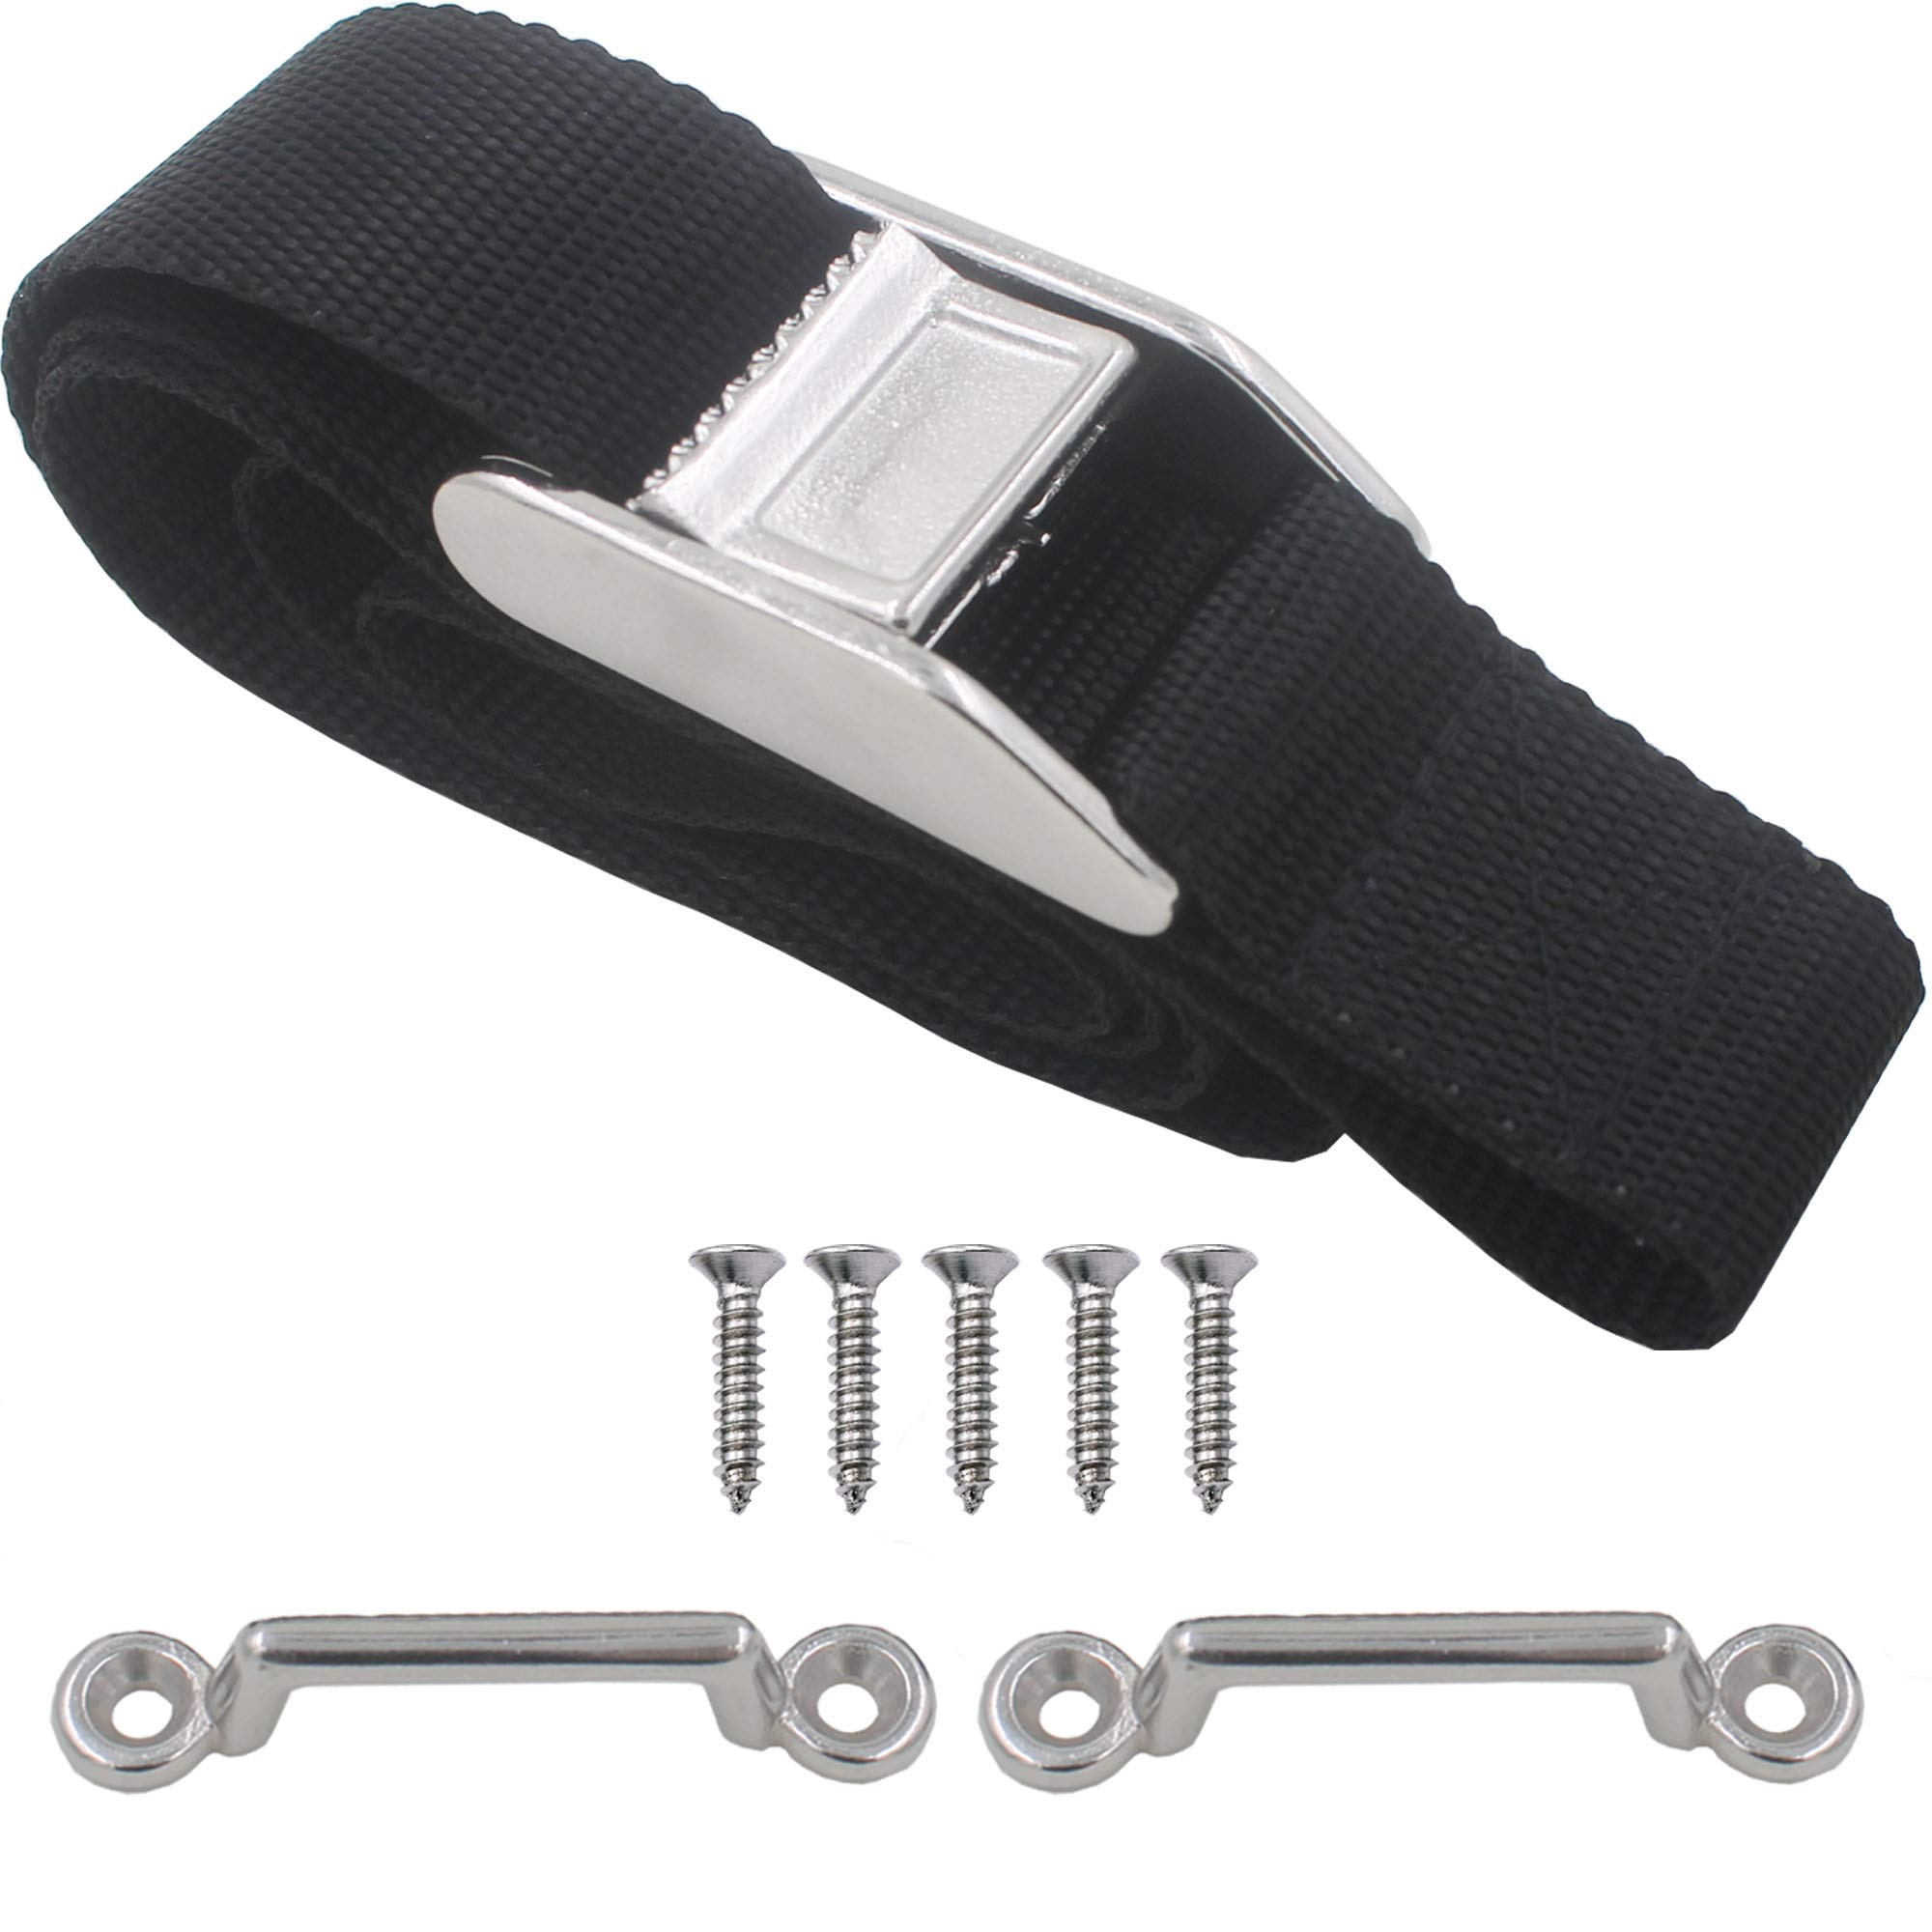 YYST 54'' Battery Tie Down Strap Kit Battery Hold Down Strap with Stainless Steel 316 Buckle, Stainless Steel 316 Deck Mounts, 4 SS Screws -1/PK by YYST